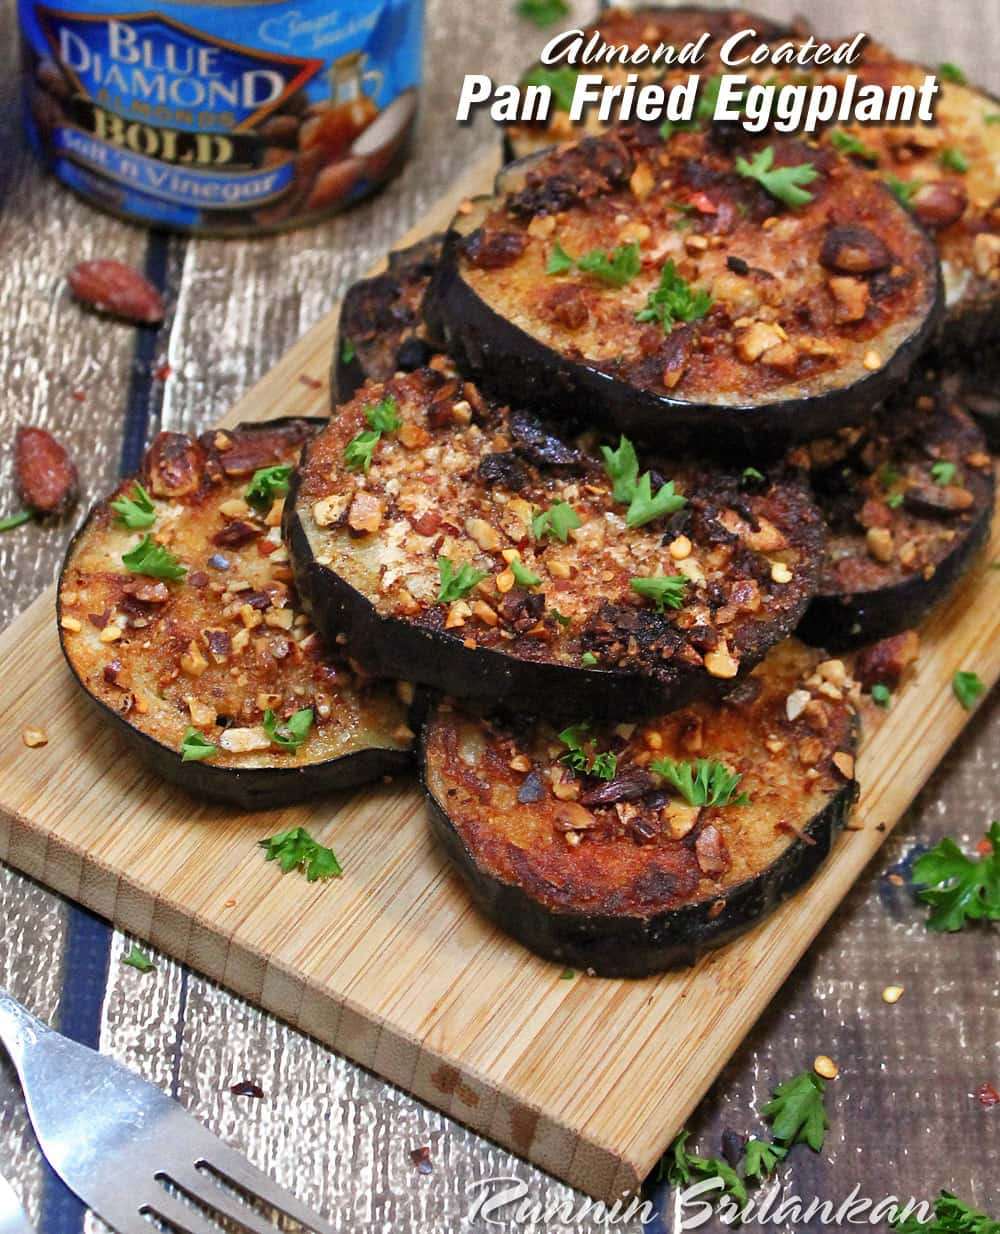 Almond Coated Pan Fried Eggplant